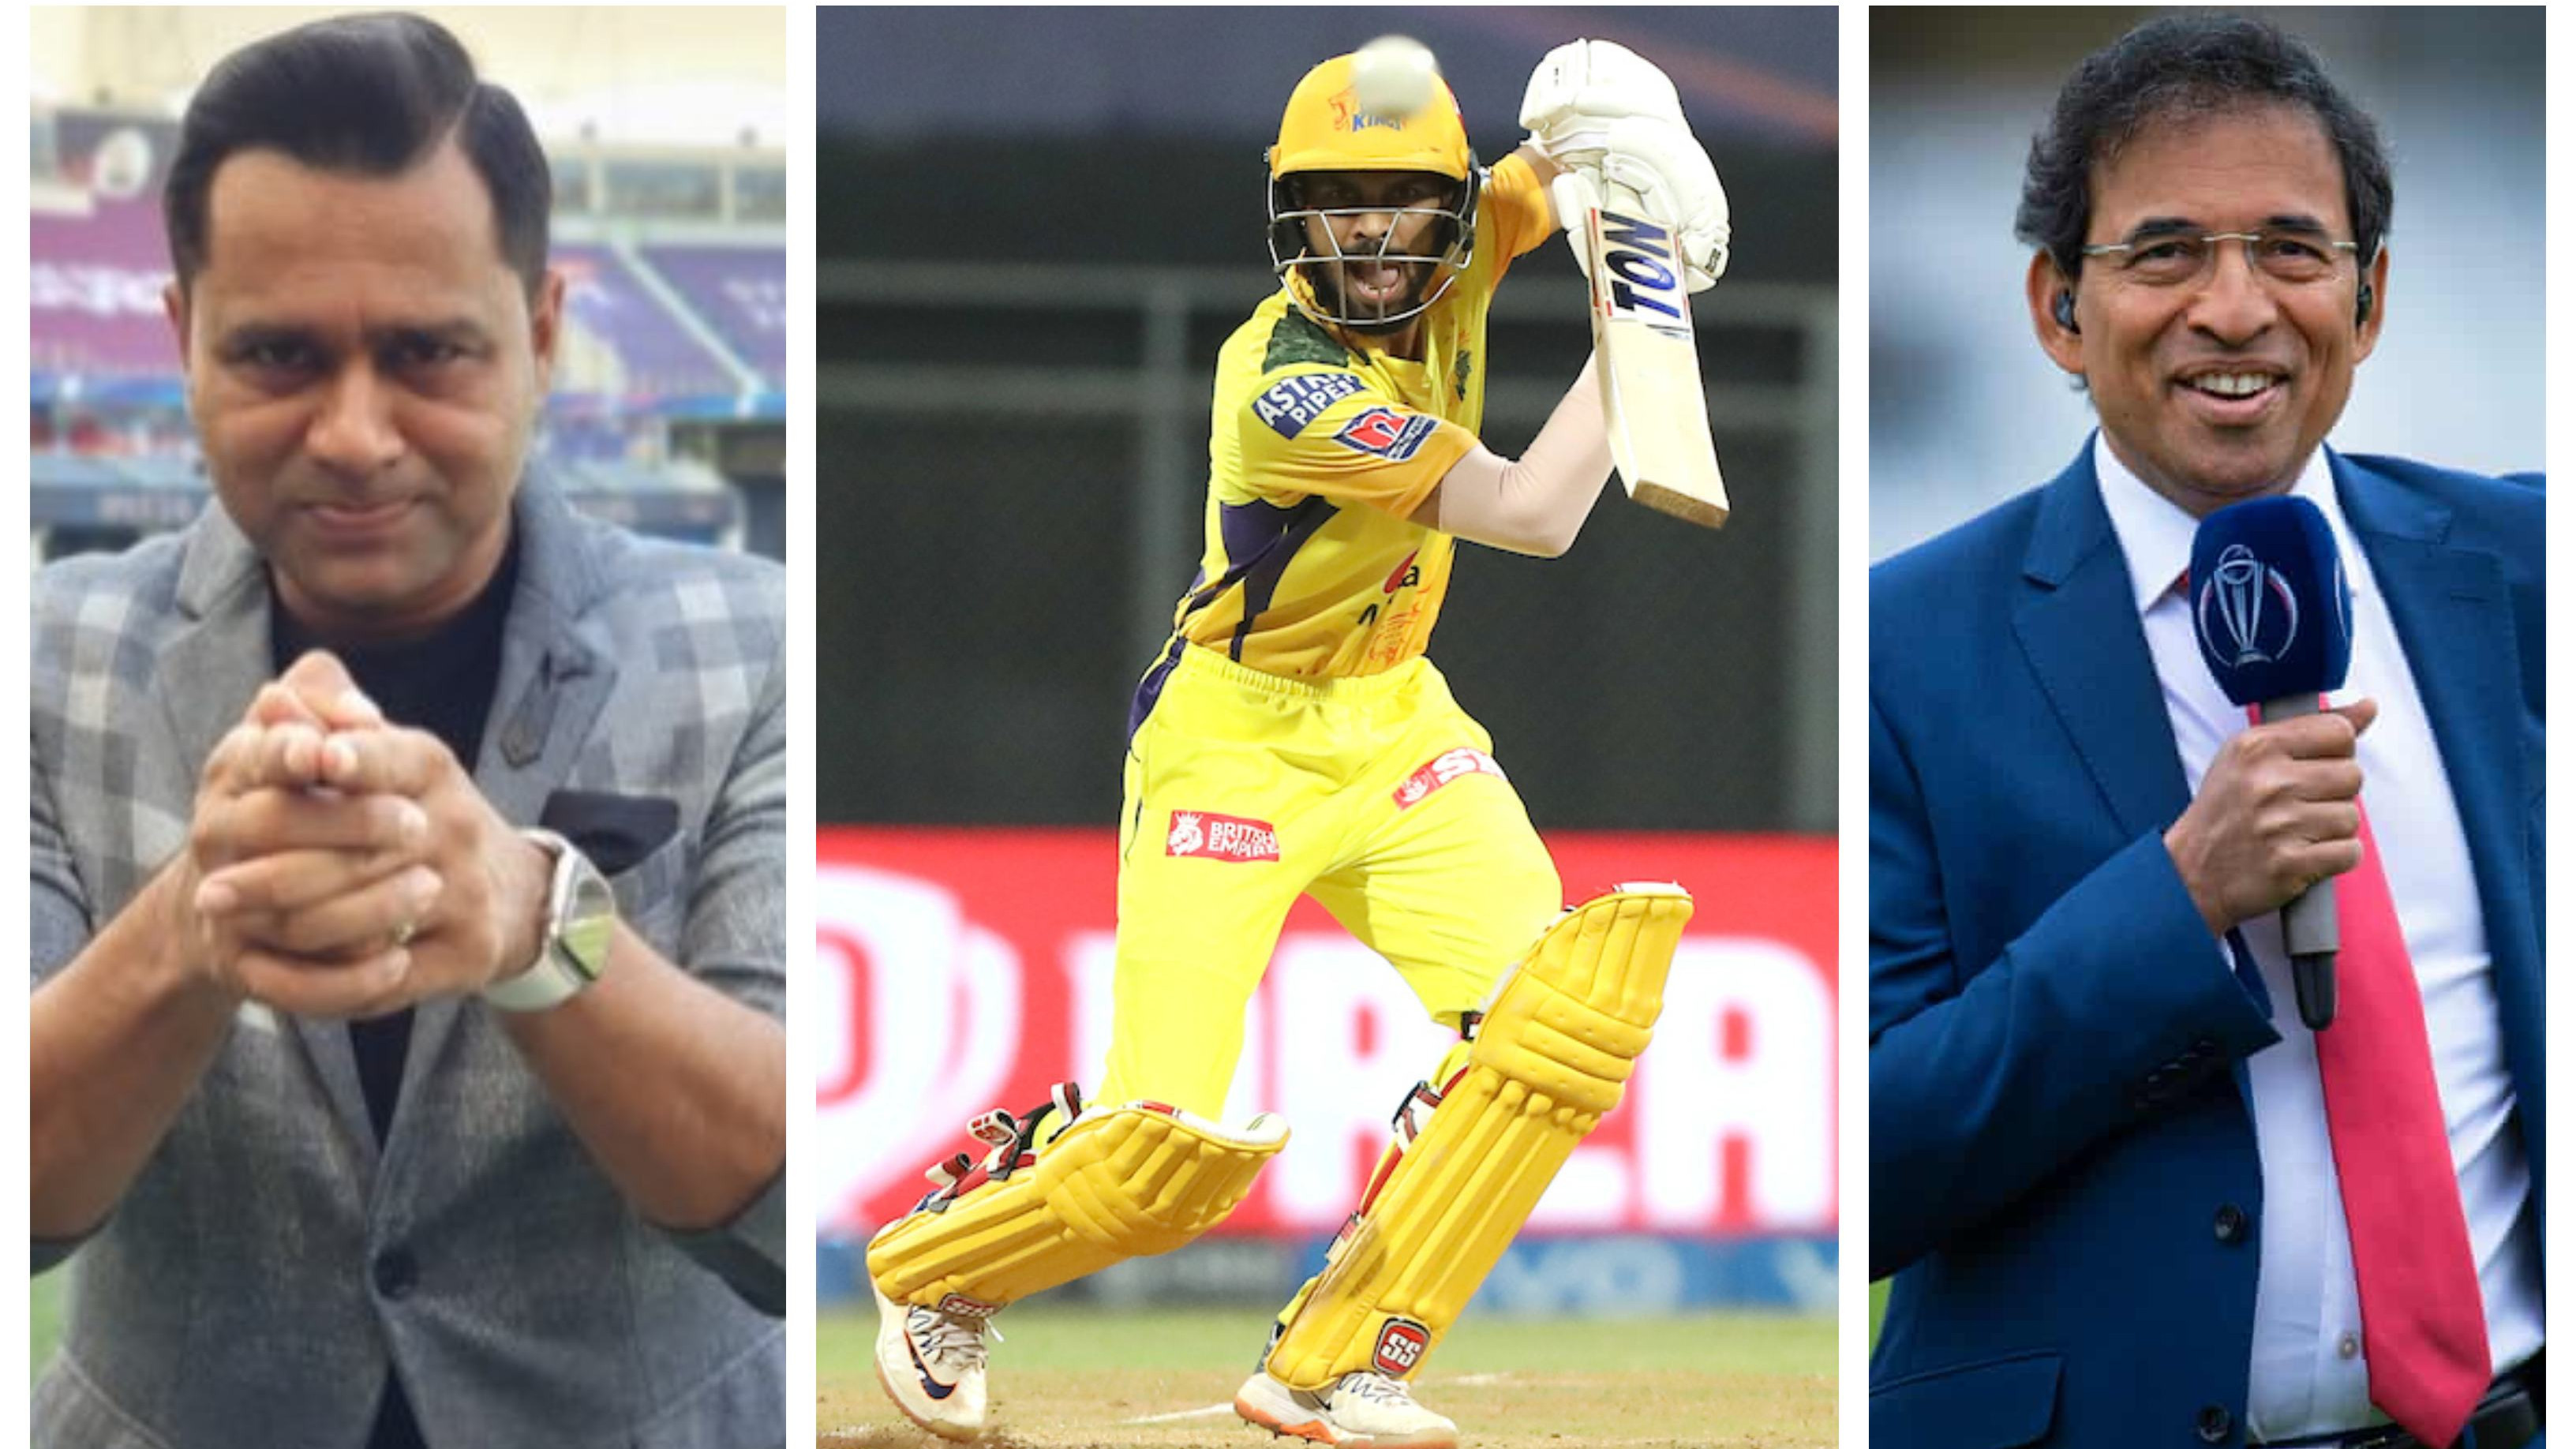 IPL 2021: Cricket fraternity reacts as Ruturaj Gaikwad slams 42-ball 64 to propel CSK to 220/3 against KKR